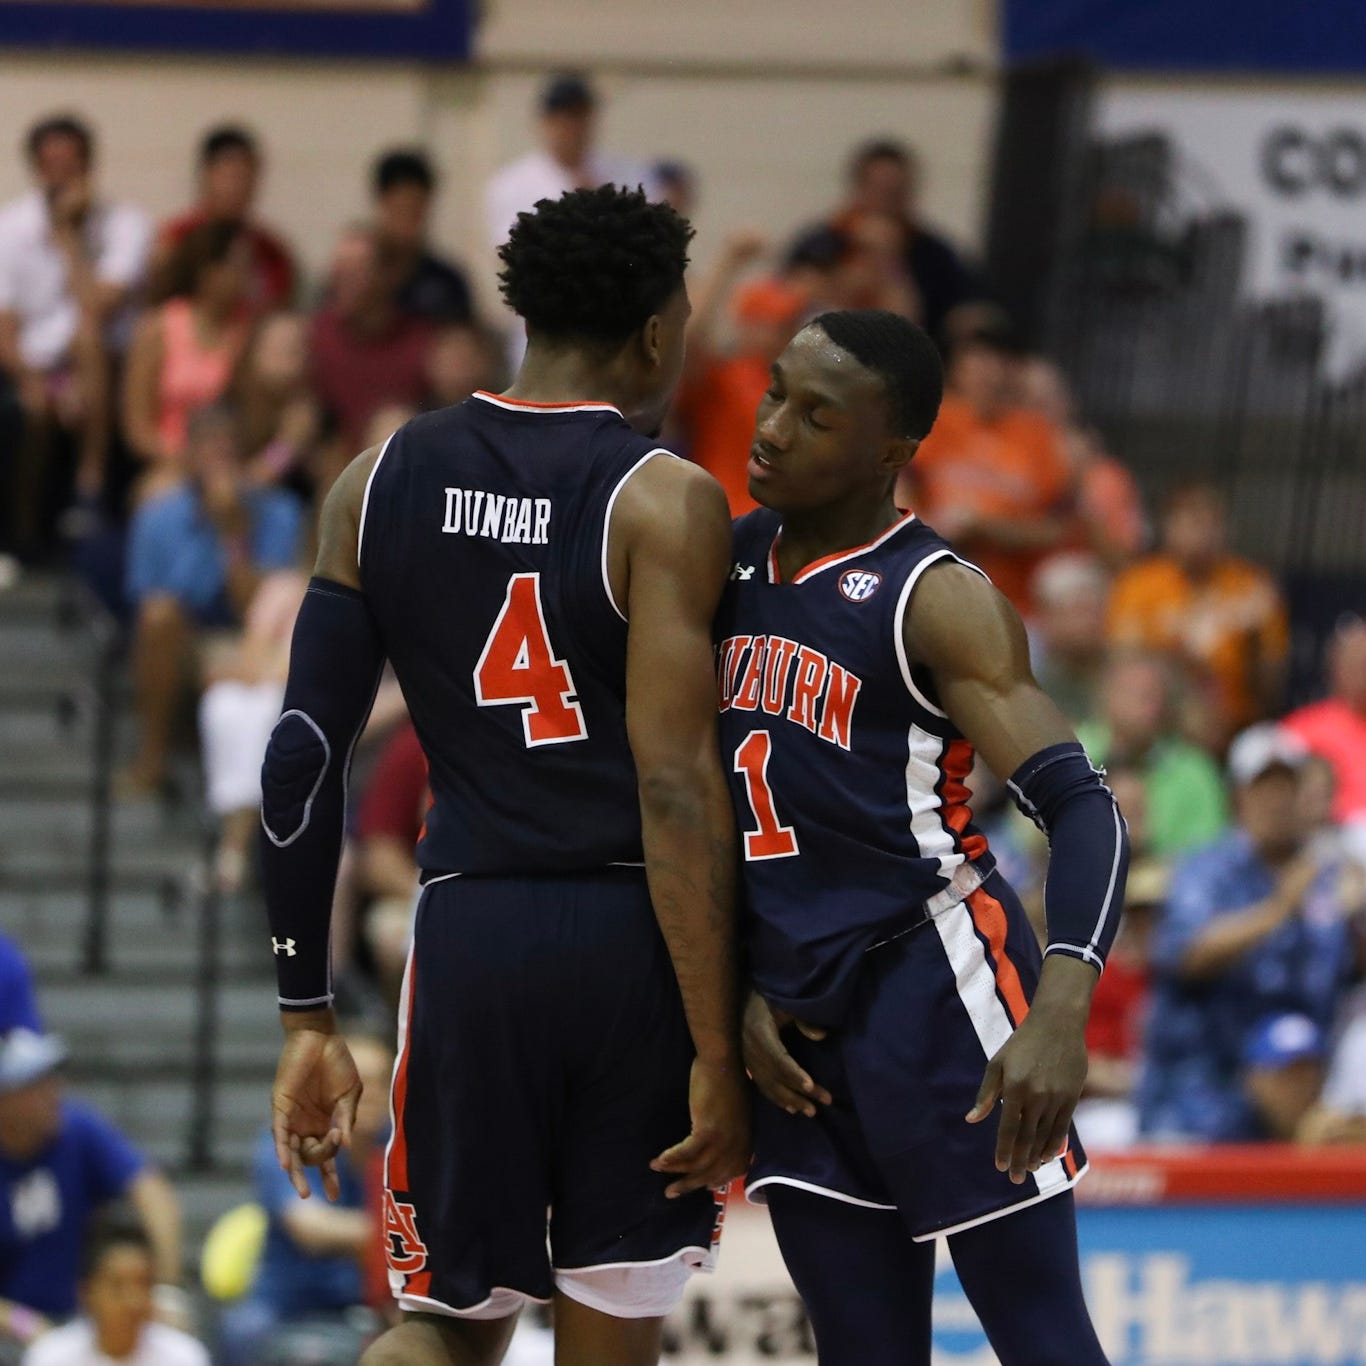 Jared Harper takes over, plus 3 more takeaways from Auburn's overtime win vs. Xavier in Maui